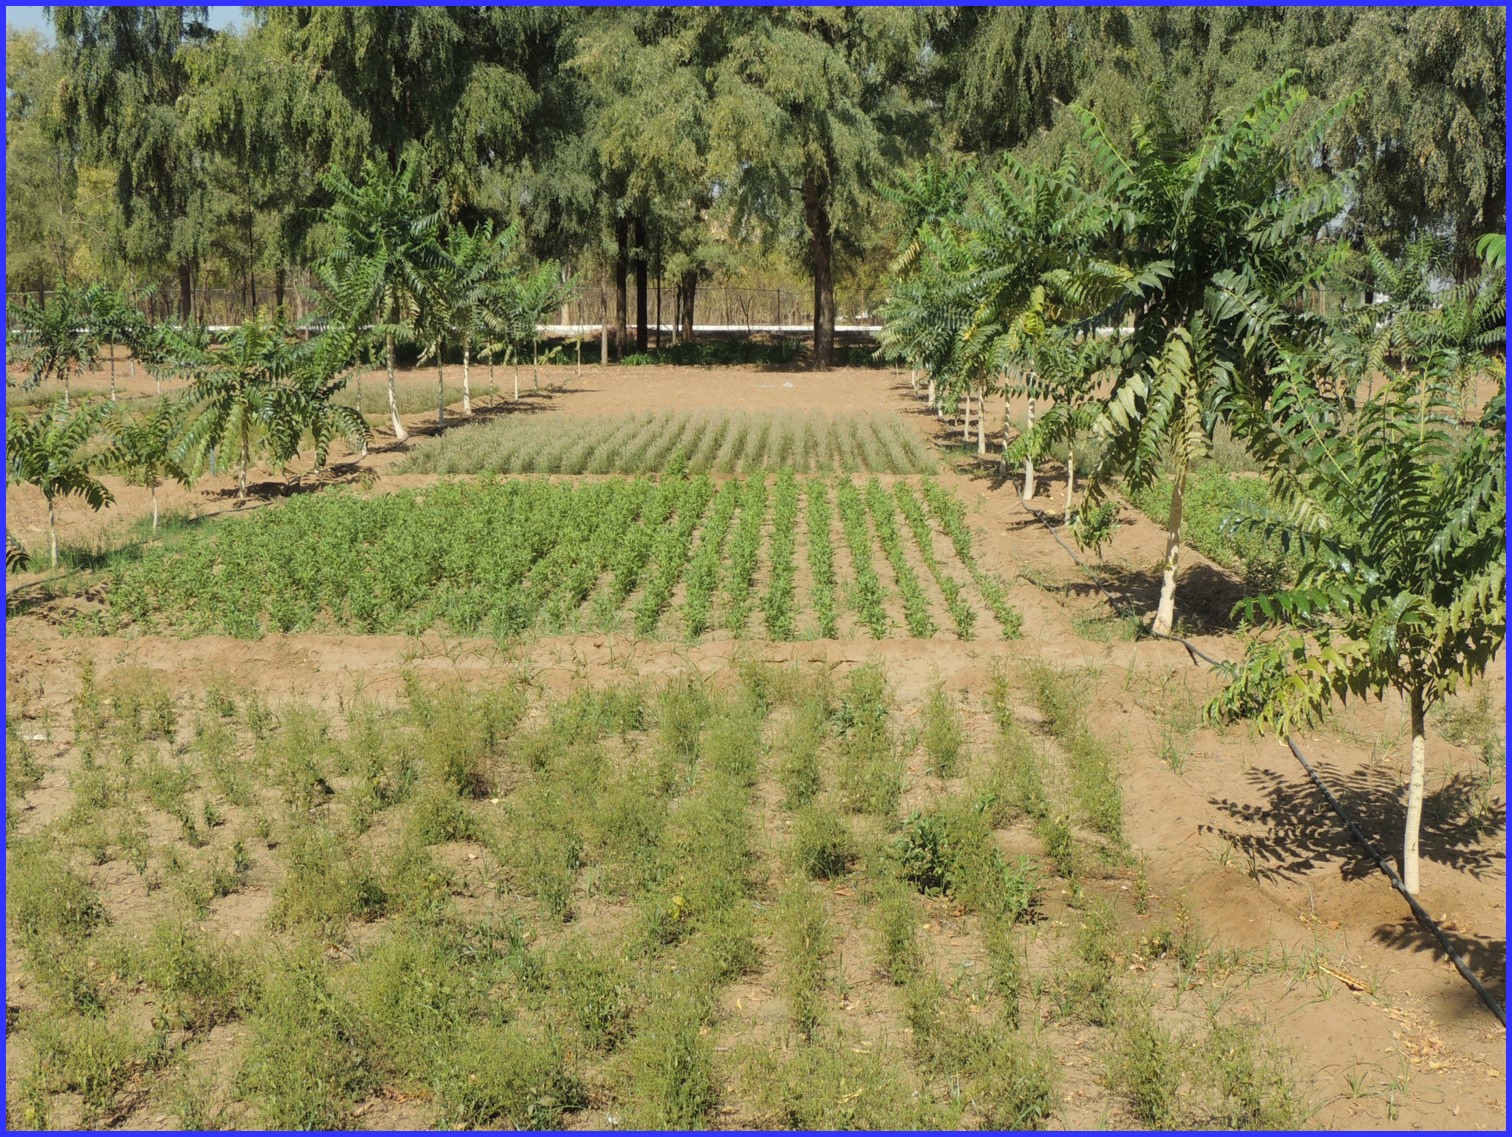 Ailanthus-based agroforestry